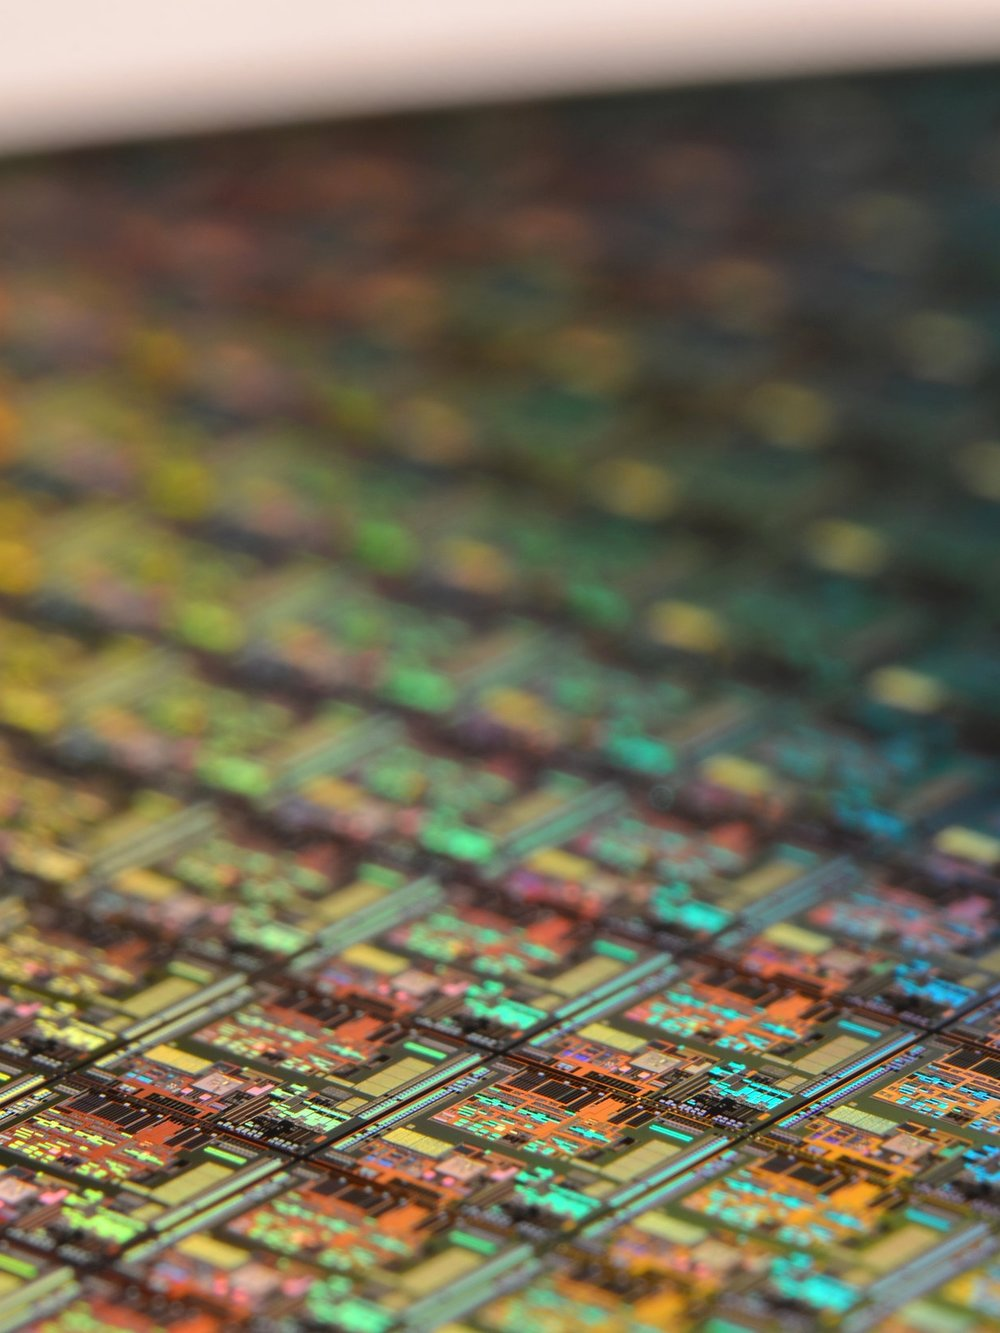 Who is ePIC? - A team of experienced ASIC and systems engineers focused on delivering innovative semiconductors for the Blockchain market.ePIC's team has over 150 years of designing and delivering industry leading semiconductors for GPU, PC, smartphones and game consoles applications. Products designed by ePIC engineers are in use across several billion products across the world and likely several in your household and office. Our people are senior engineers who have contributed to key designs and products from AMD, ATI, Google, Microsoft, Nintendo, Qualcomm, Sony and many others. Our expertise in high performance, parallel processing and power efficiency are unrivalled in the industry for designing Blockchain ASICs.